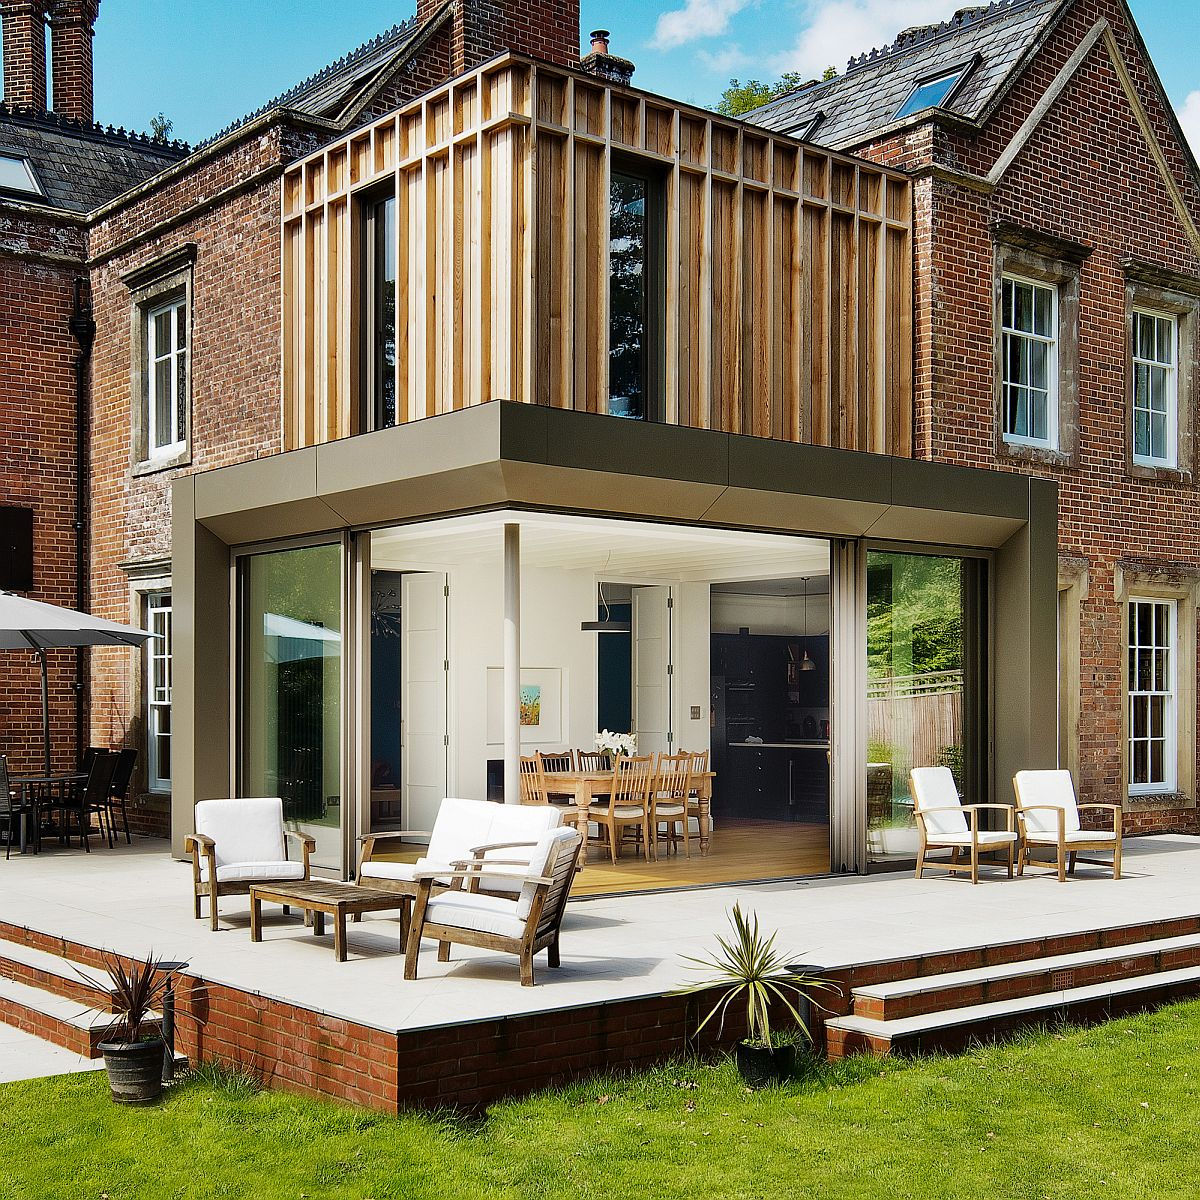 Traditional British Home In Brick Gets Fabulous Modern